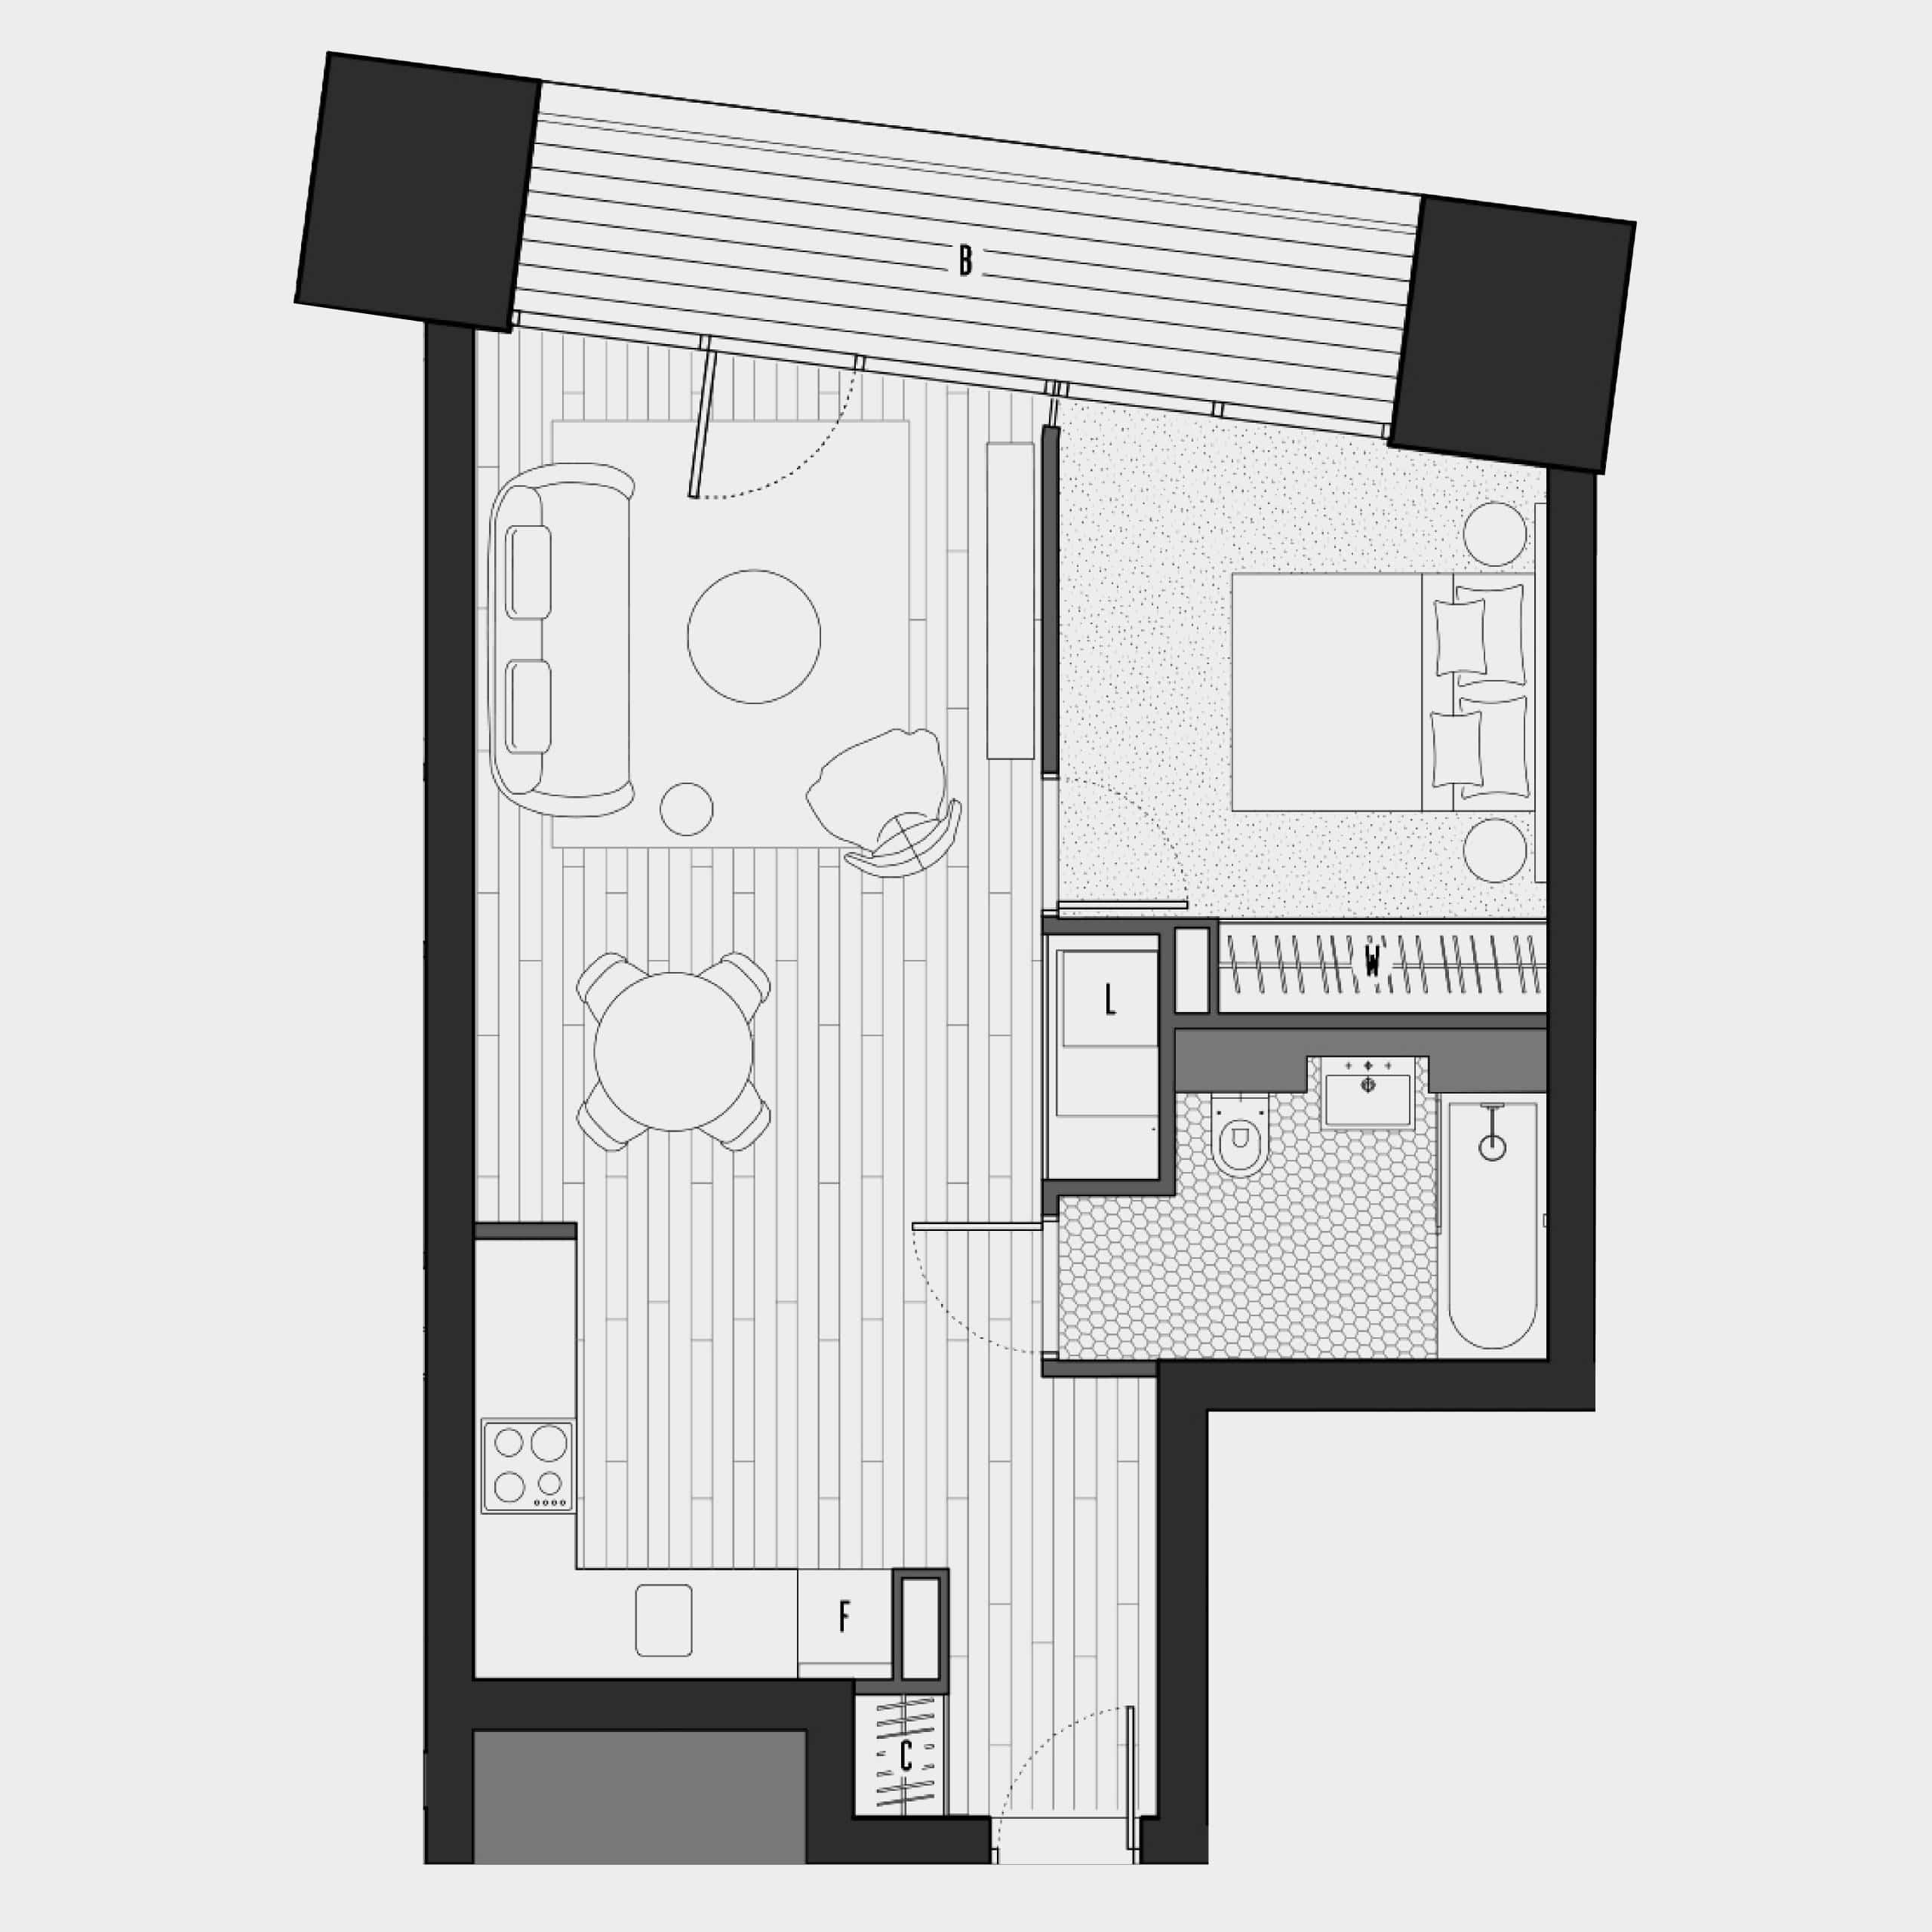 Two Bedroom Apartments London: Apartment Floorplans - Two Bed, One Bed, Suite